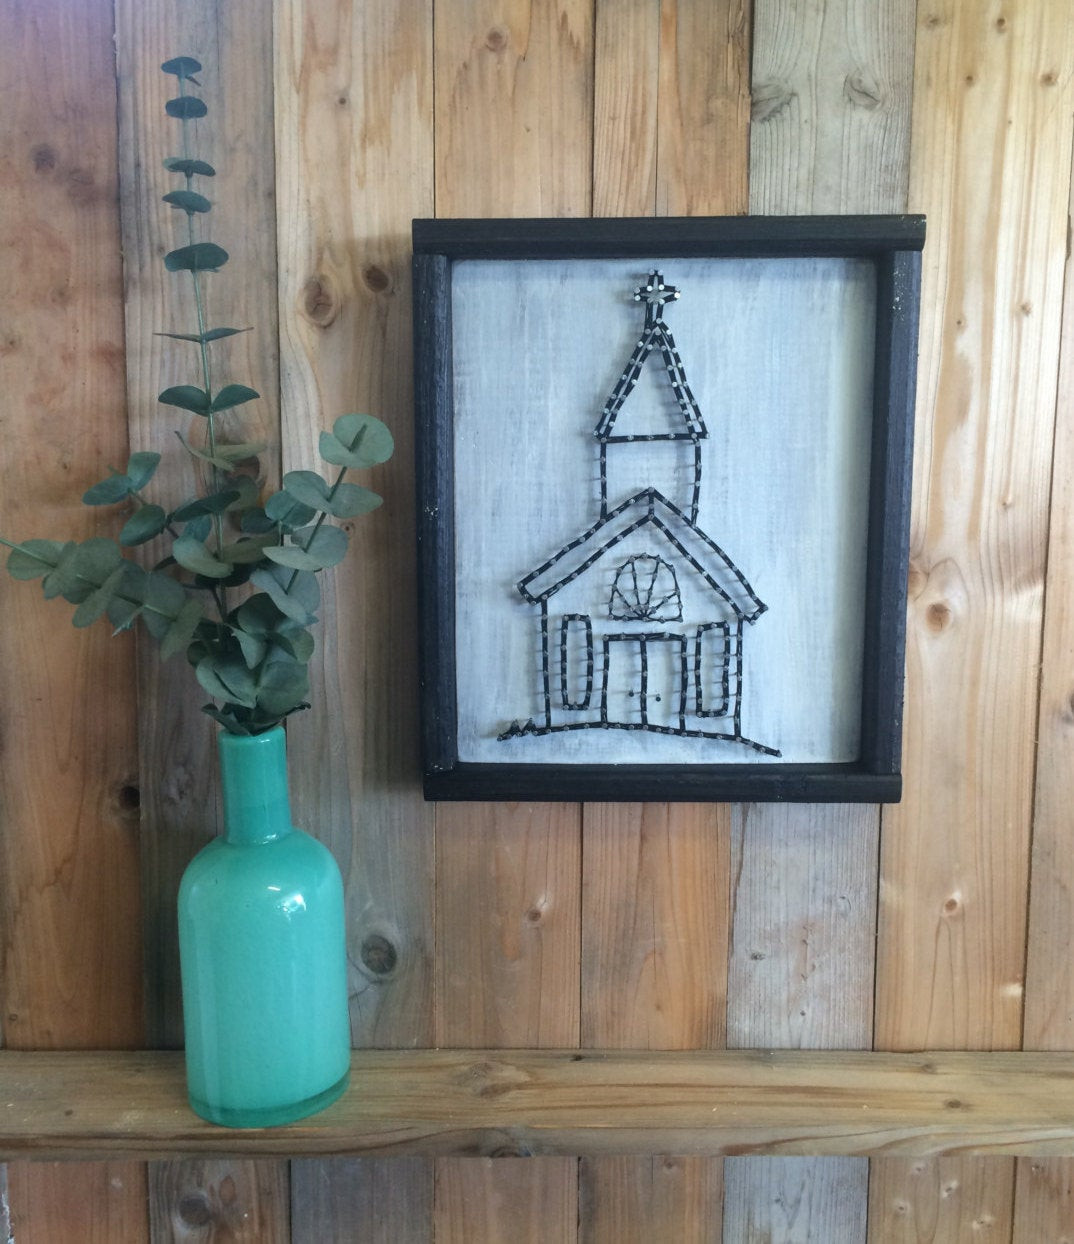 Best ideas about Christian Wall Art . Save or Pin Church String Art Christian Wall Decor Chapel Design Now.